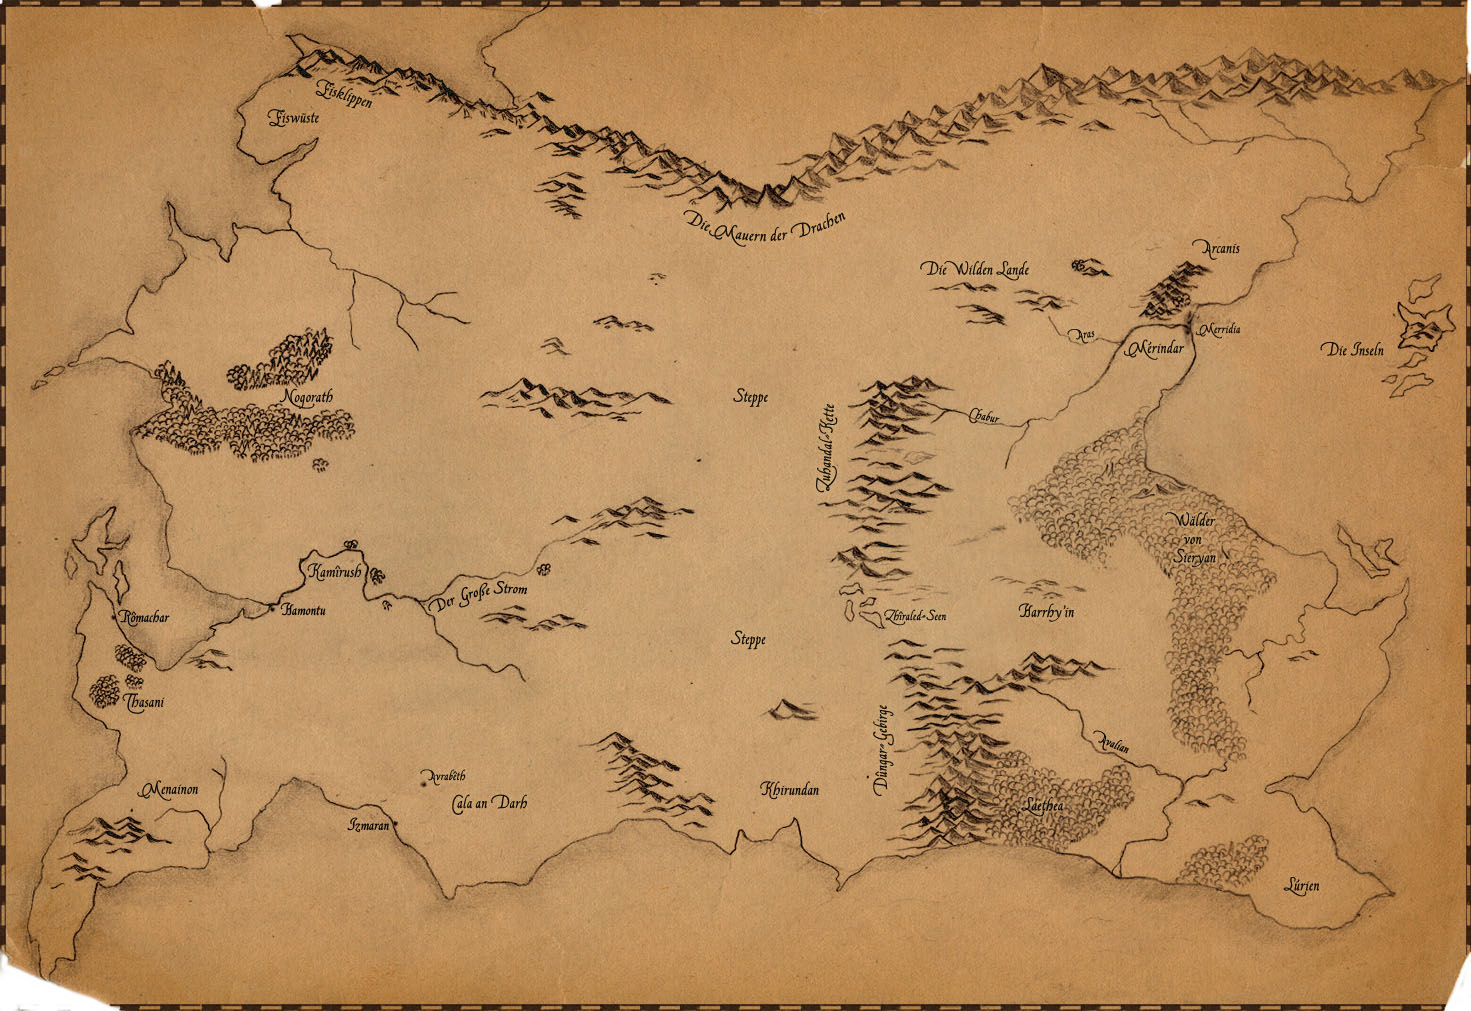 Older map of Alvarania, drawn with pencil.